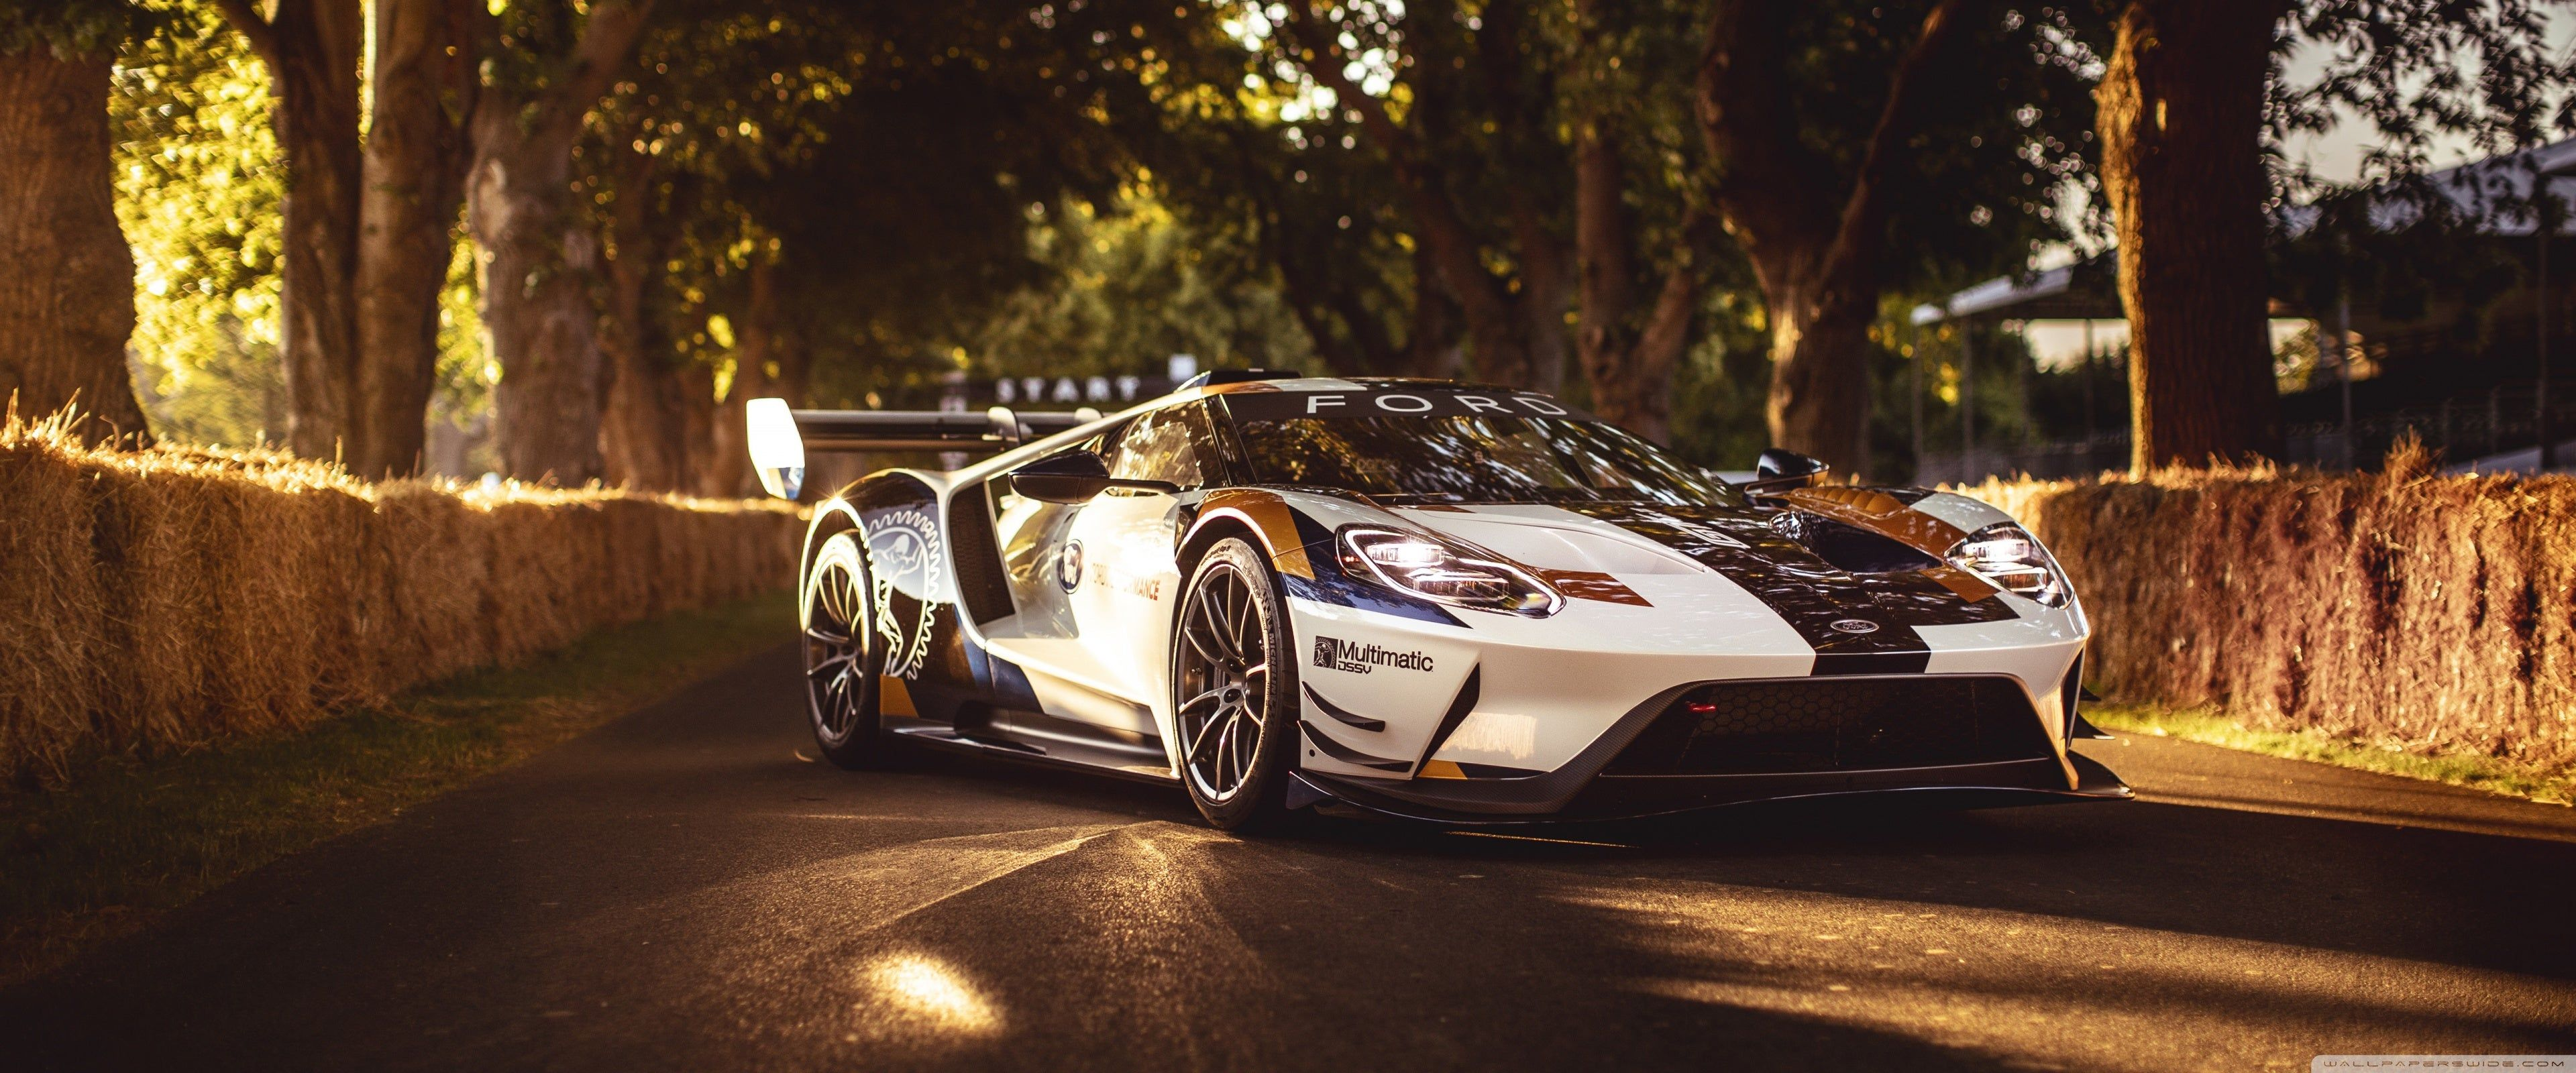 Ford Gt Mk Ii For Dual Monitor 4k Wallpaper Ford Gt Super Cars Ford